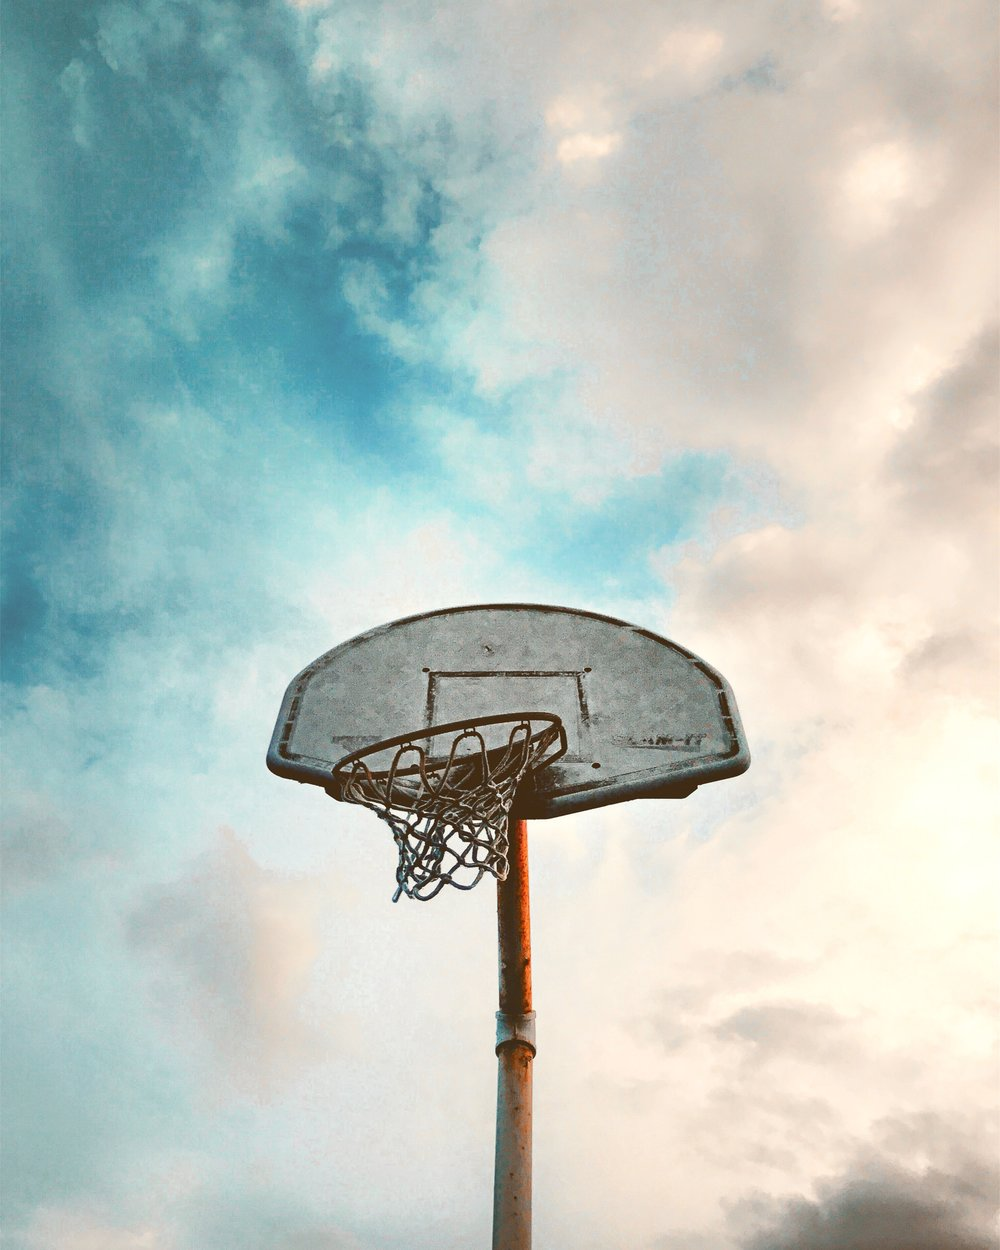 Of Basketballs and Sod - A semi-factual, totally not self-incriminating story